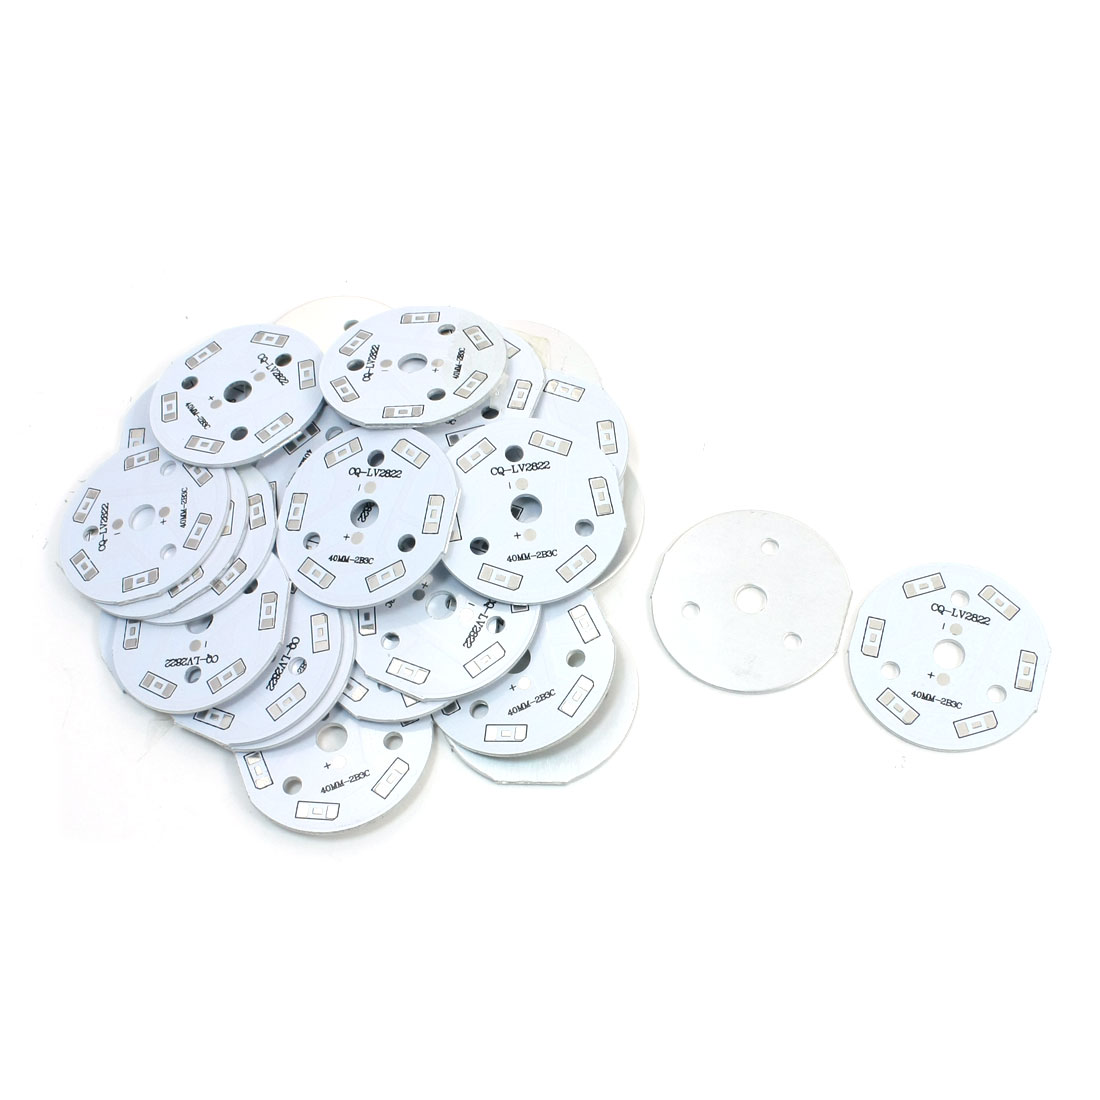 30Pcs 6 x 1/2W 5730 SMD LED High Power DIY Circle Aluminum PCB Circuit Board 40mm Diameter